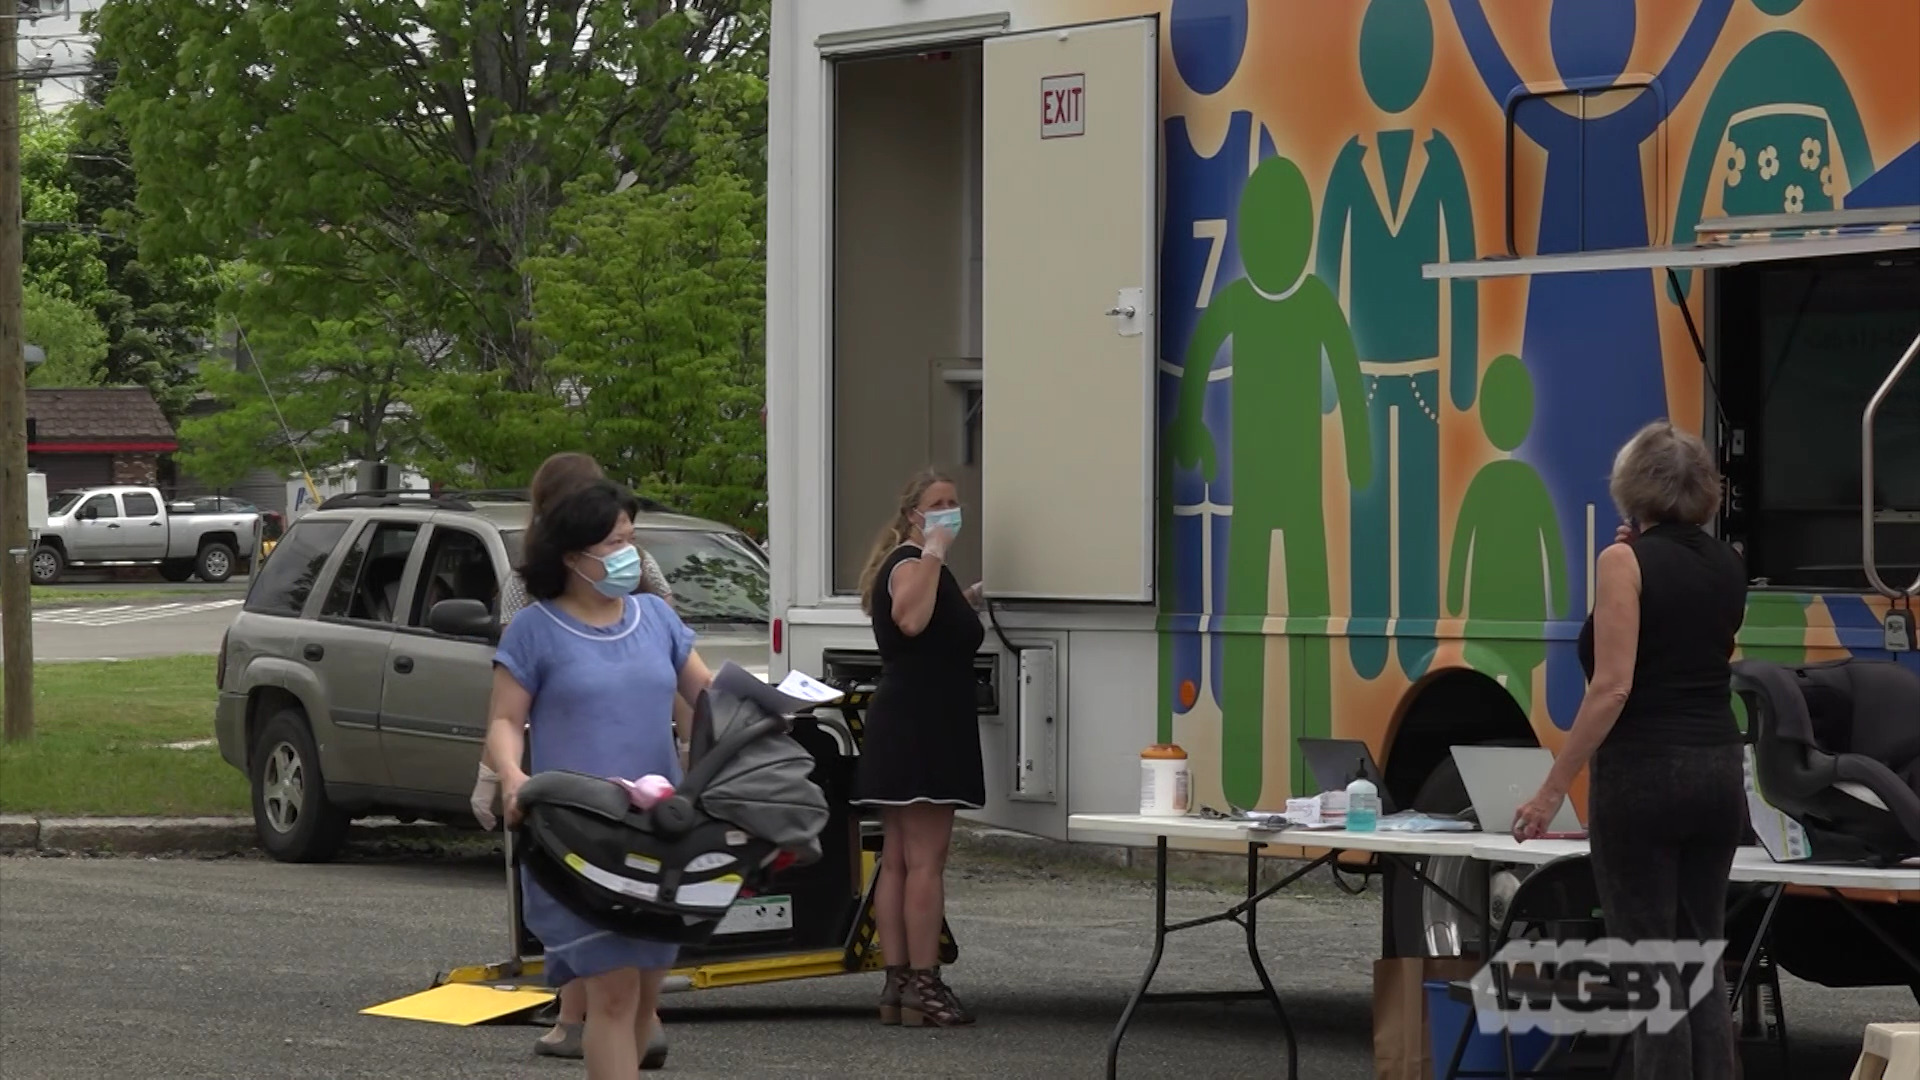 WATCH: To keep families from having to visit hospitals during the pandemic, Community Health Programs has taken its well-baby check-ups mobile.